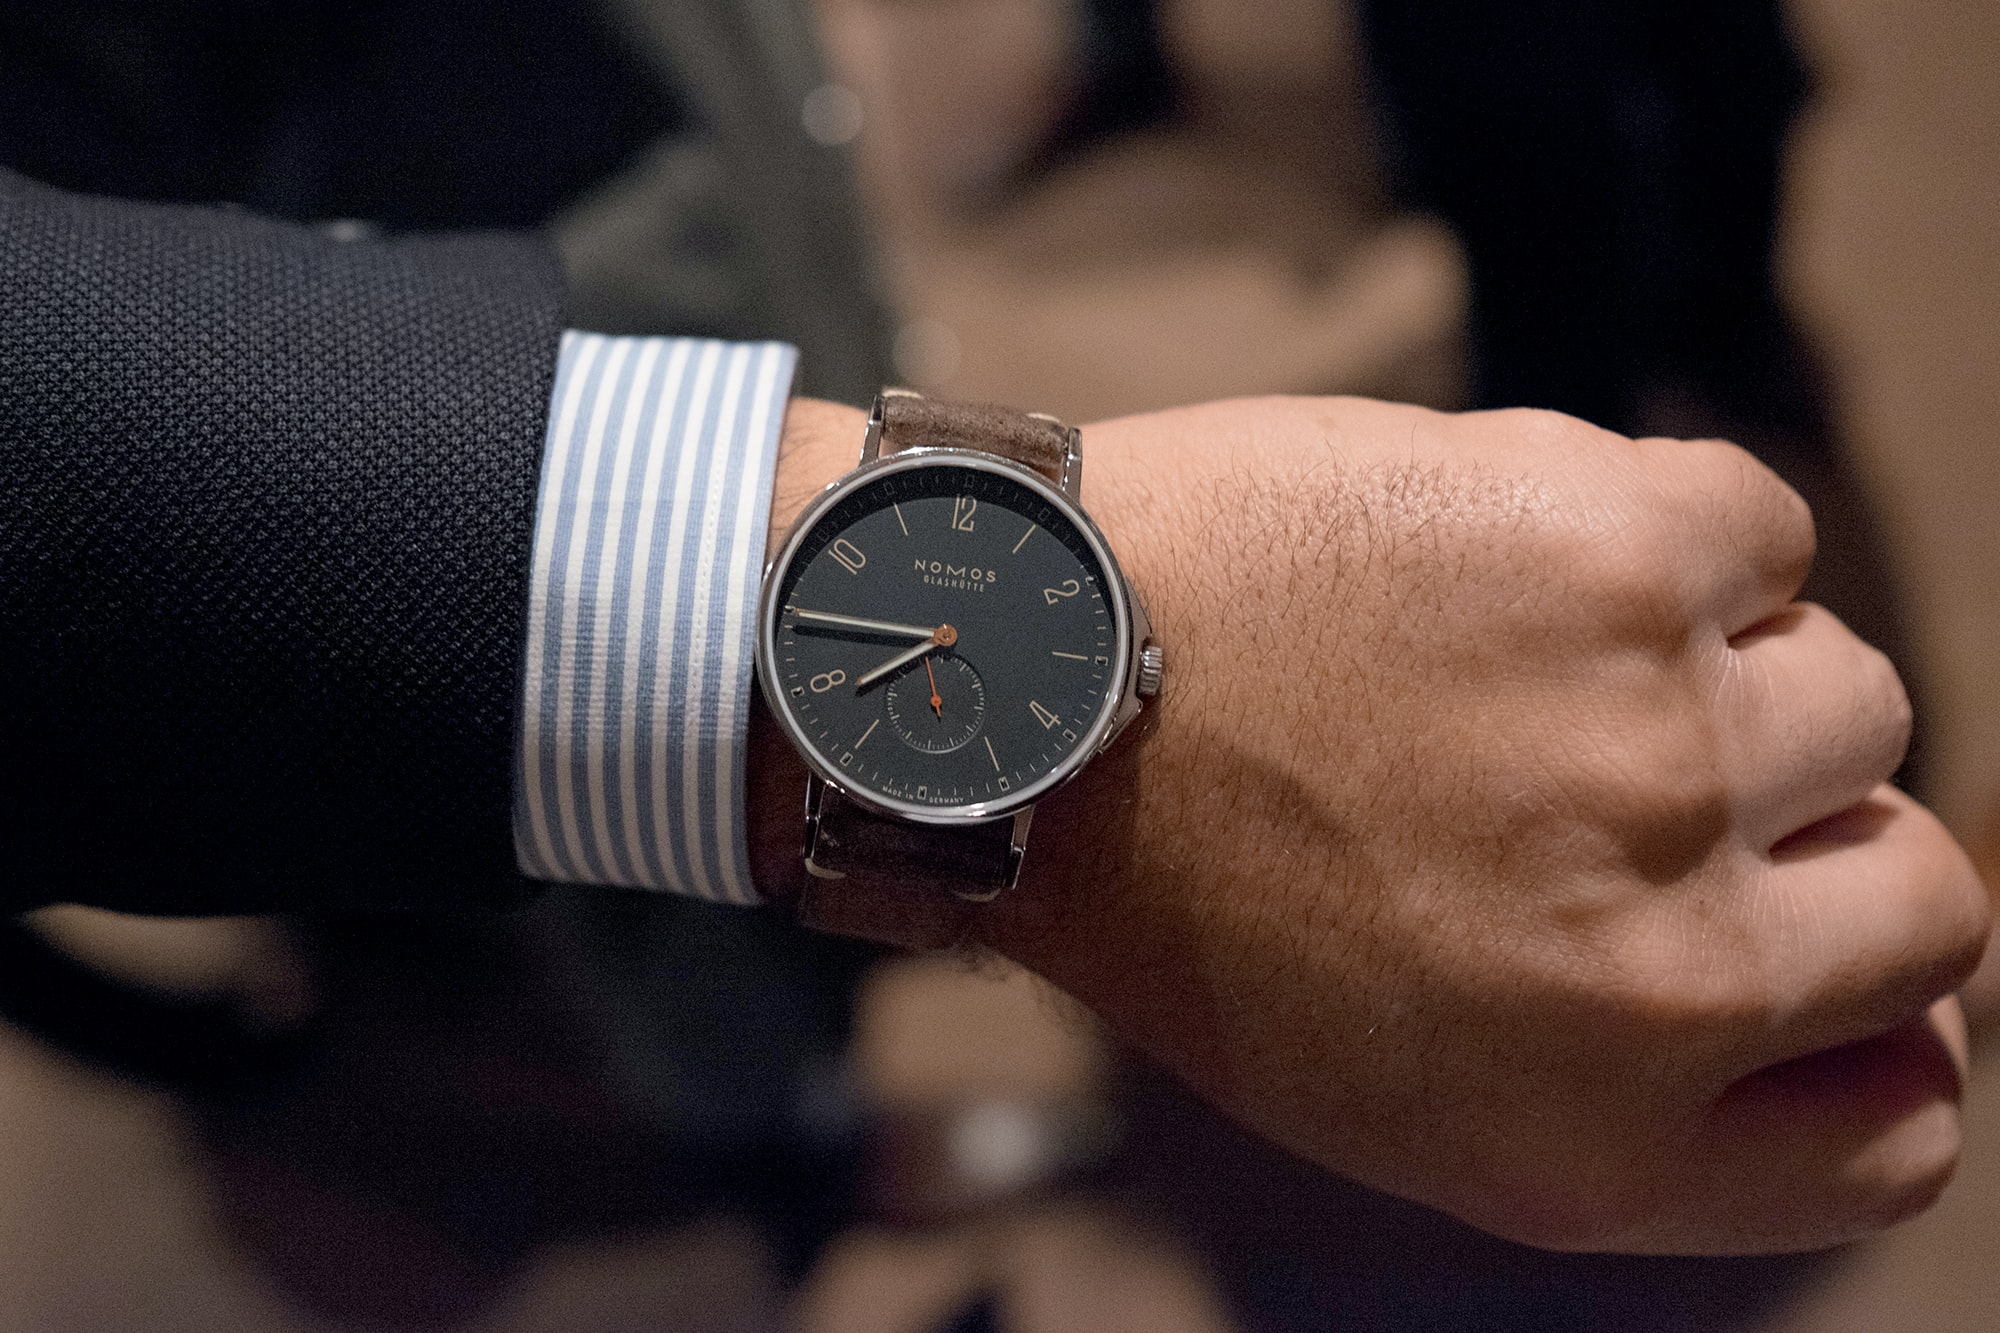 Photo Report: Watch Spotting At The HODINKEE Meet-Up In London (Plus Our Holiday 2016 Pop-Up At Harrods) Photo Report: Watch Spotting At The HODINKEE Meet-Up In London (Plus Our Holiday 2016 Pop-Up At Harrods) Hodinkee event 29 nov 2016 65